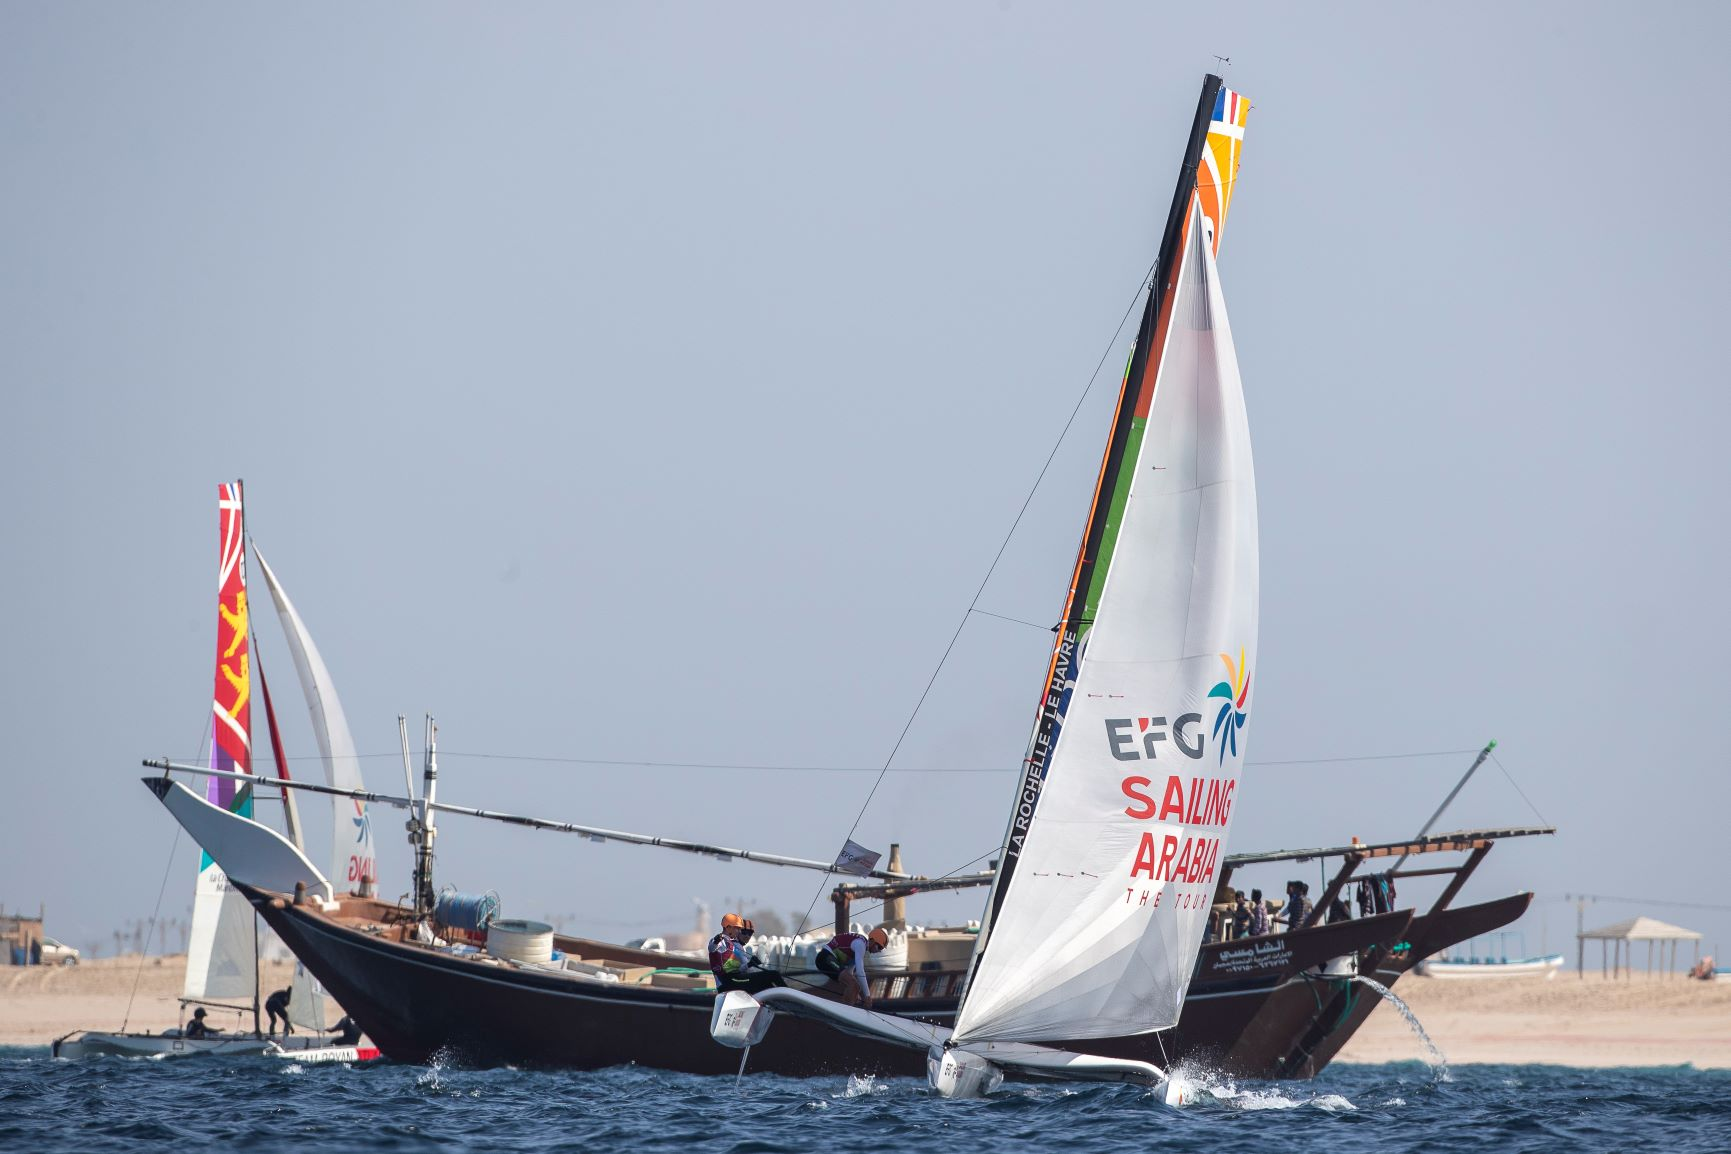 EFG Sailing Arabia – The Tour 2021 gearing up for return to Omani shores